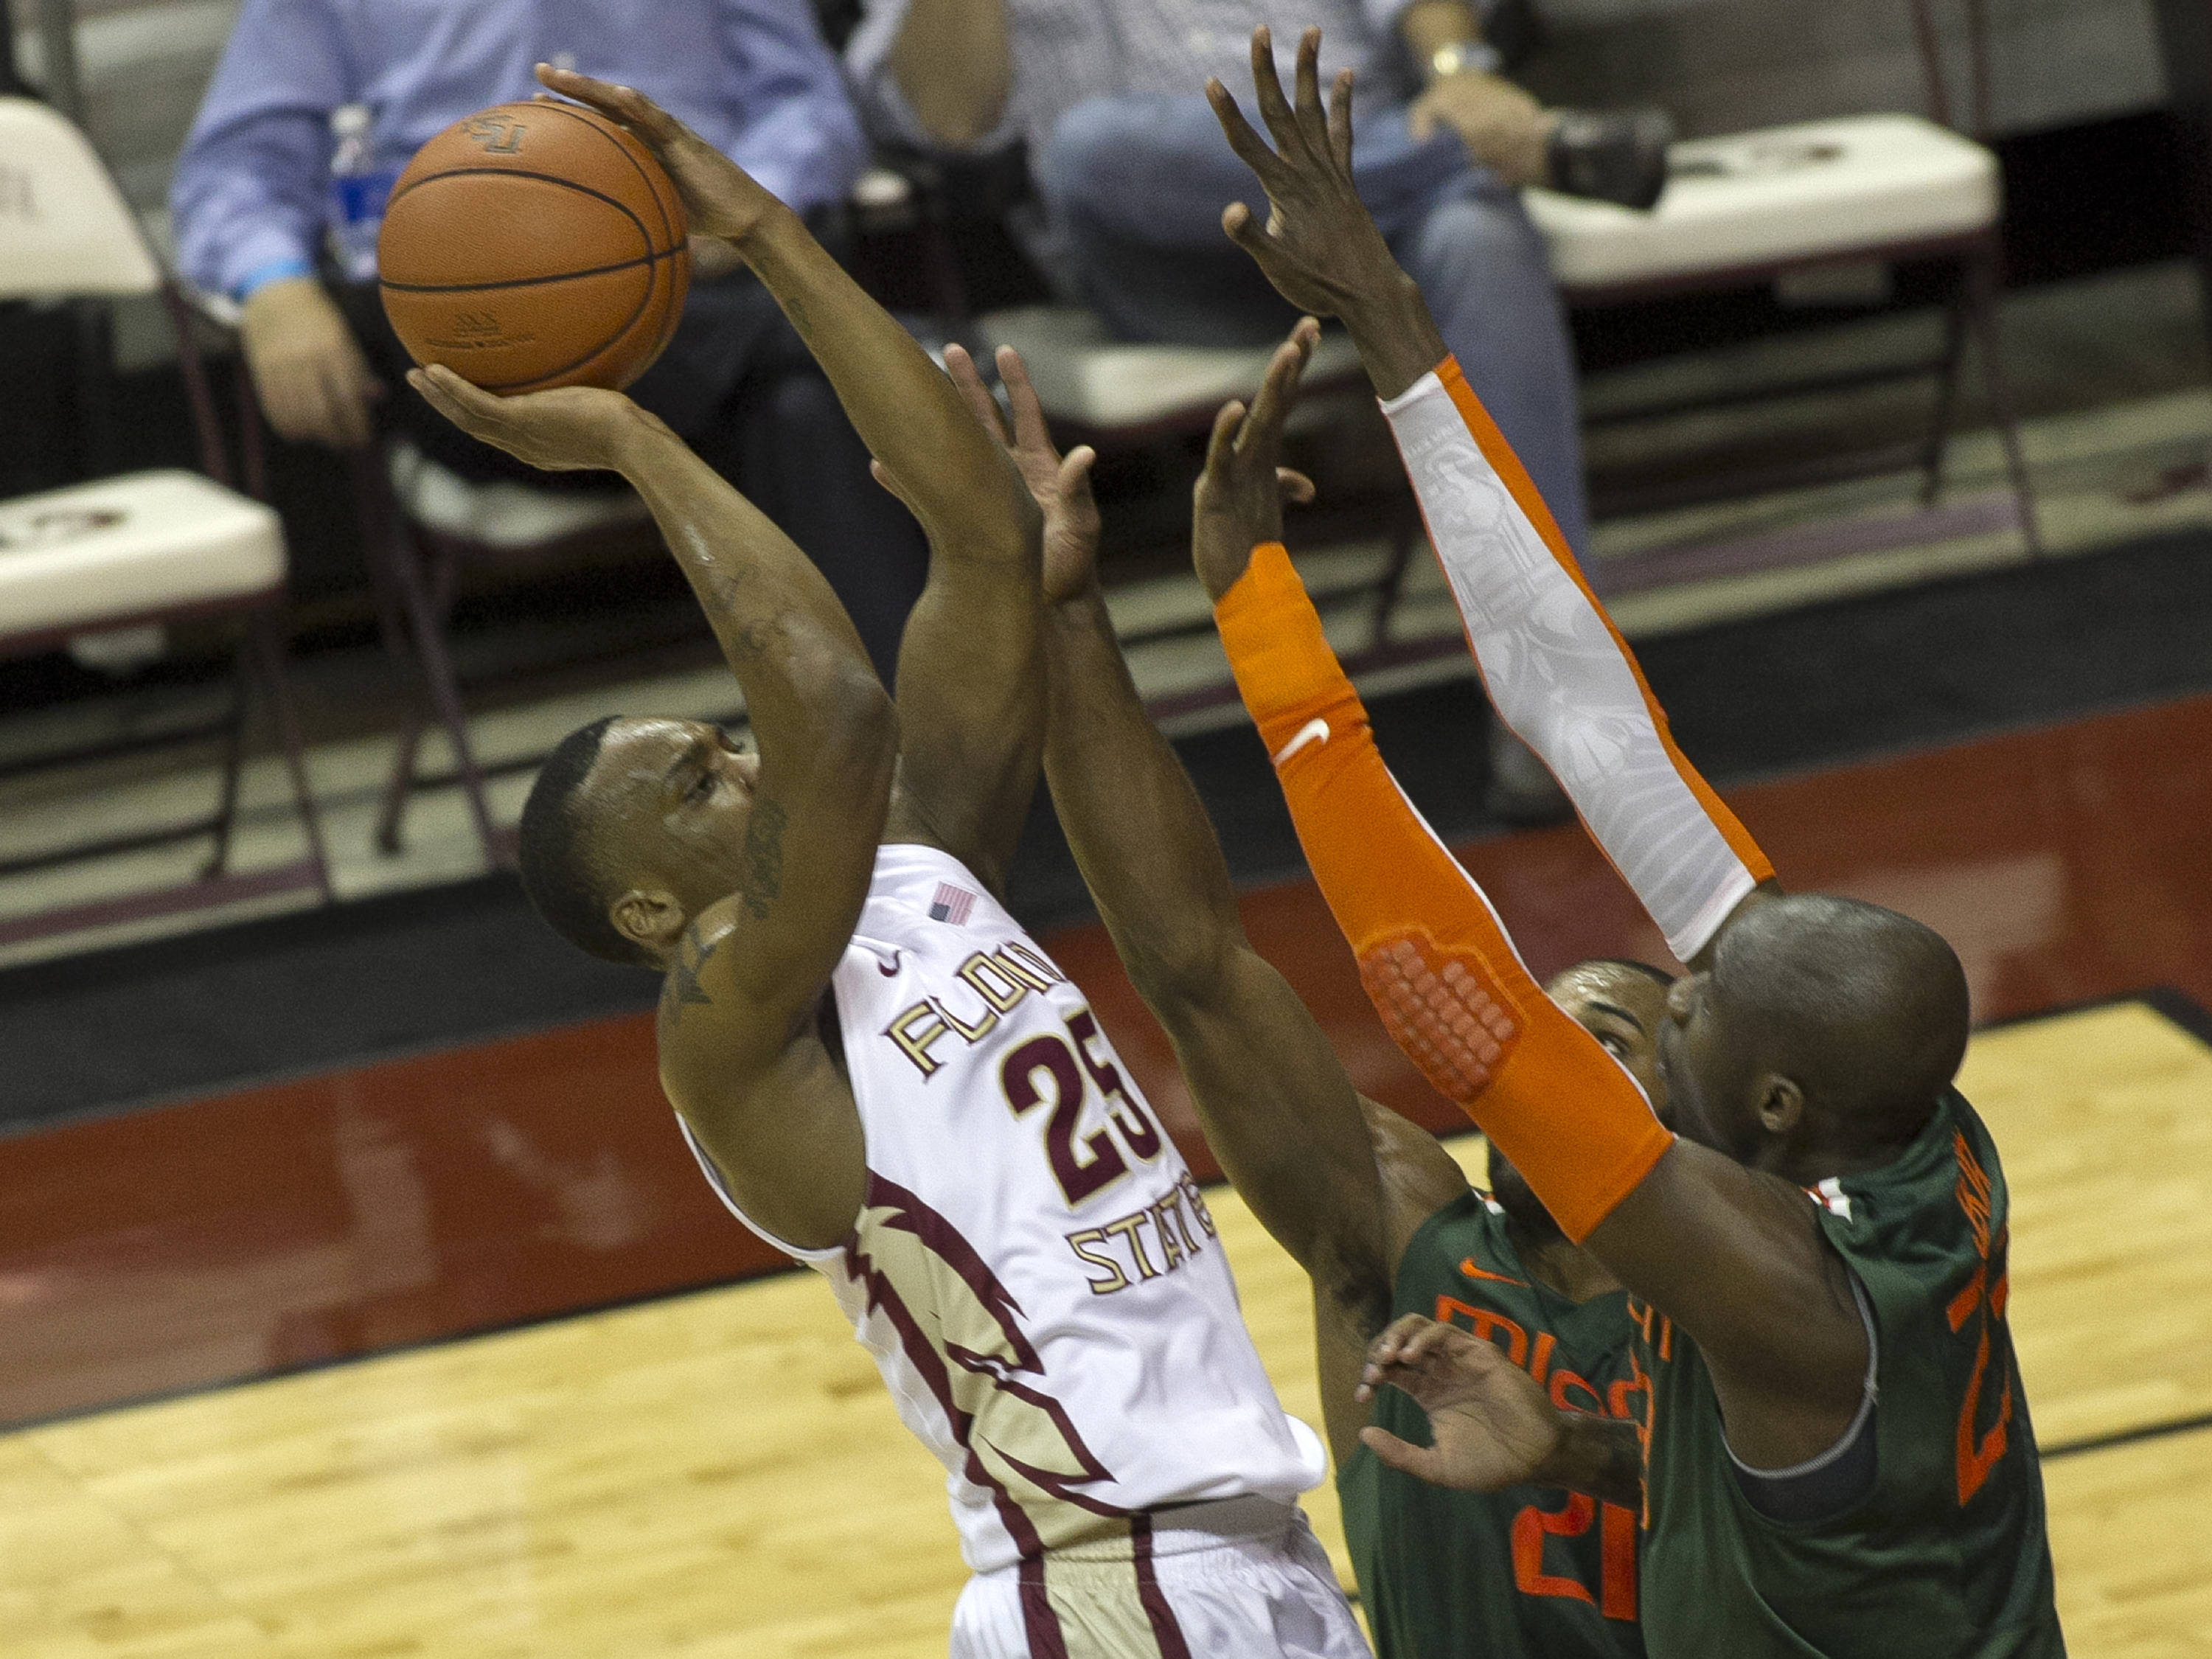 Aaron Thomas (25) shooting over pressure, FSU vs Miami, 2-10-14, (Photo's by Steve Musco)